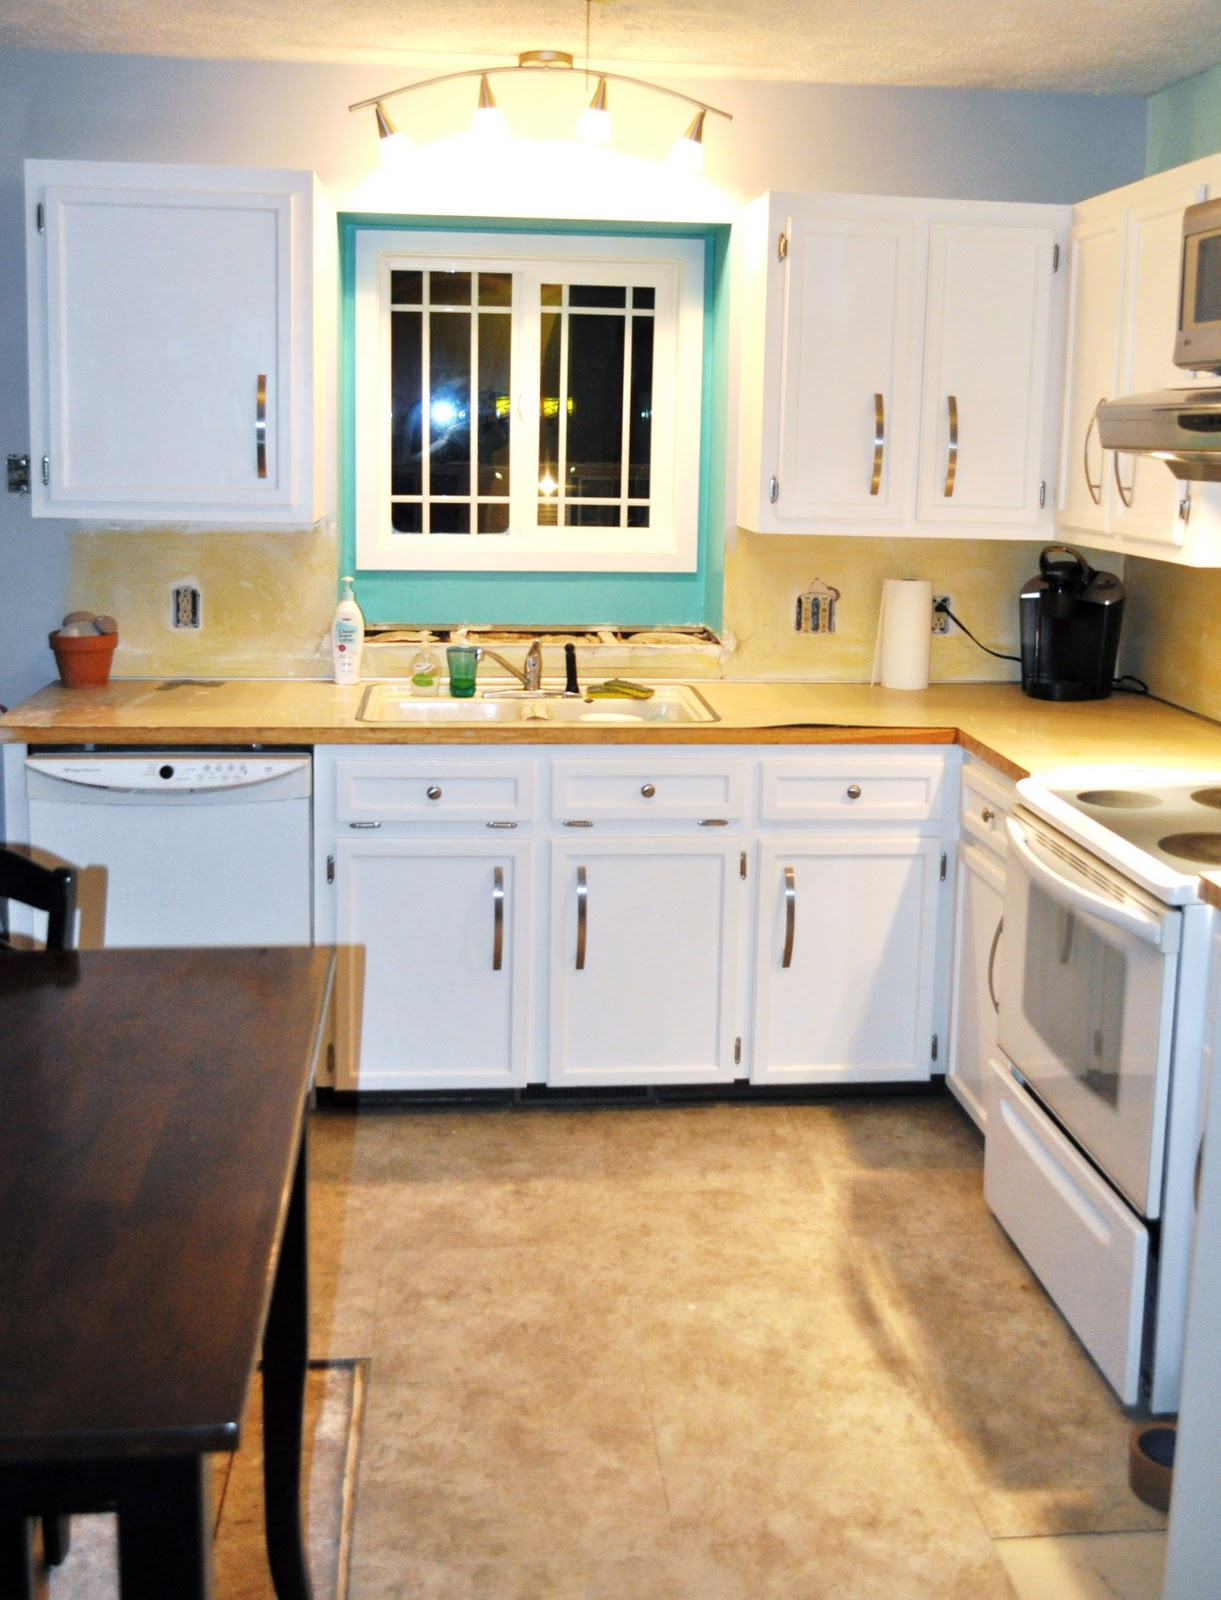 White Kitchen Interior With Wooden Countertop Photo 1